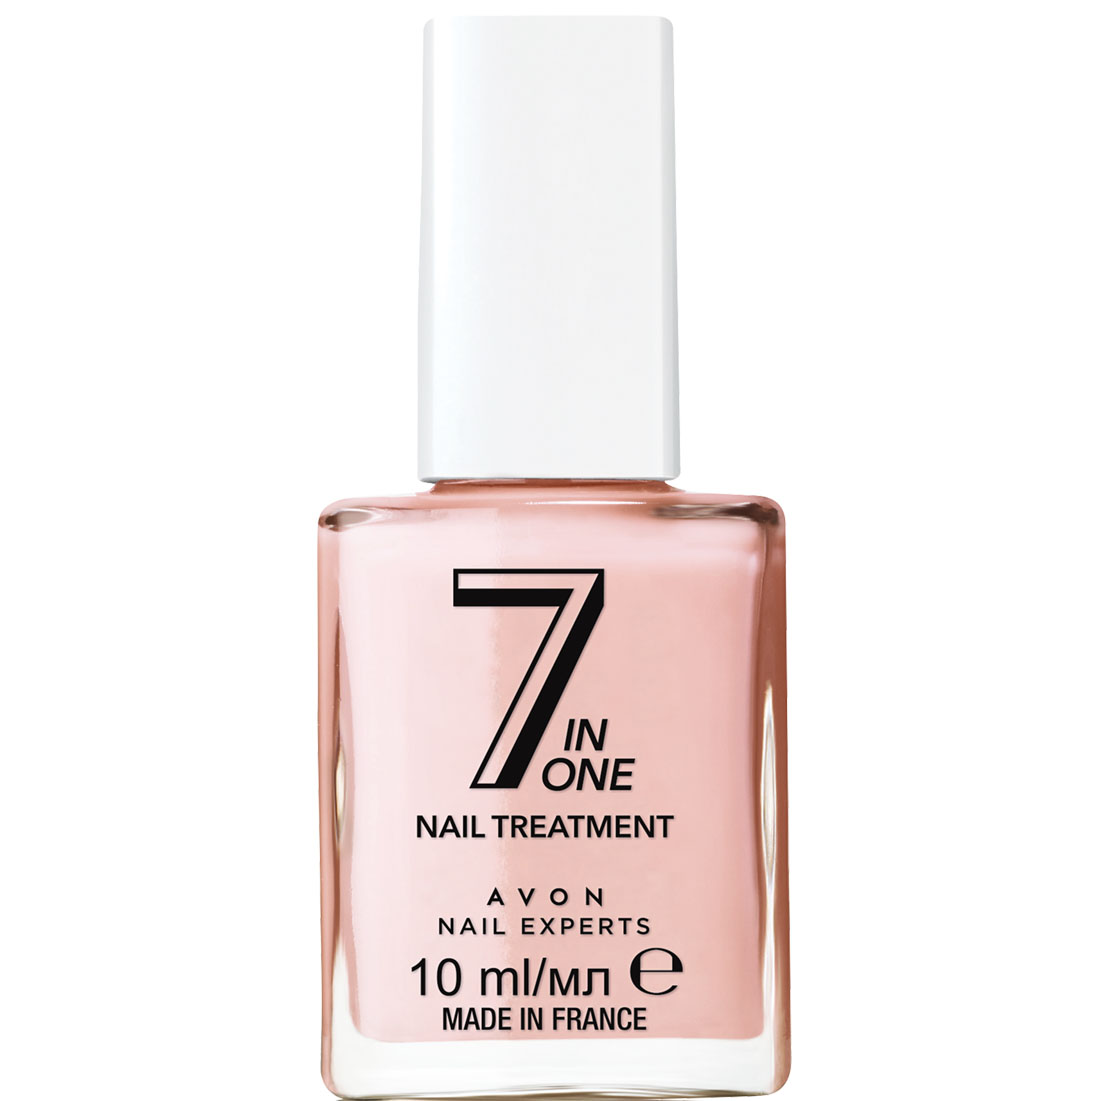 7-in-1 Nail Treatment